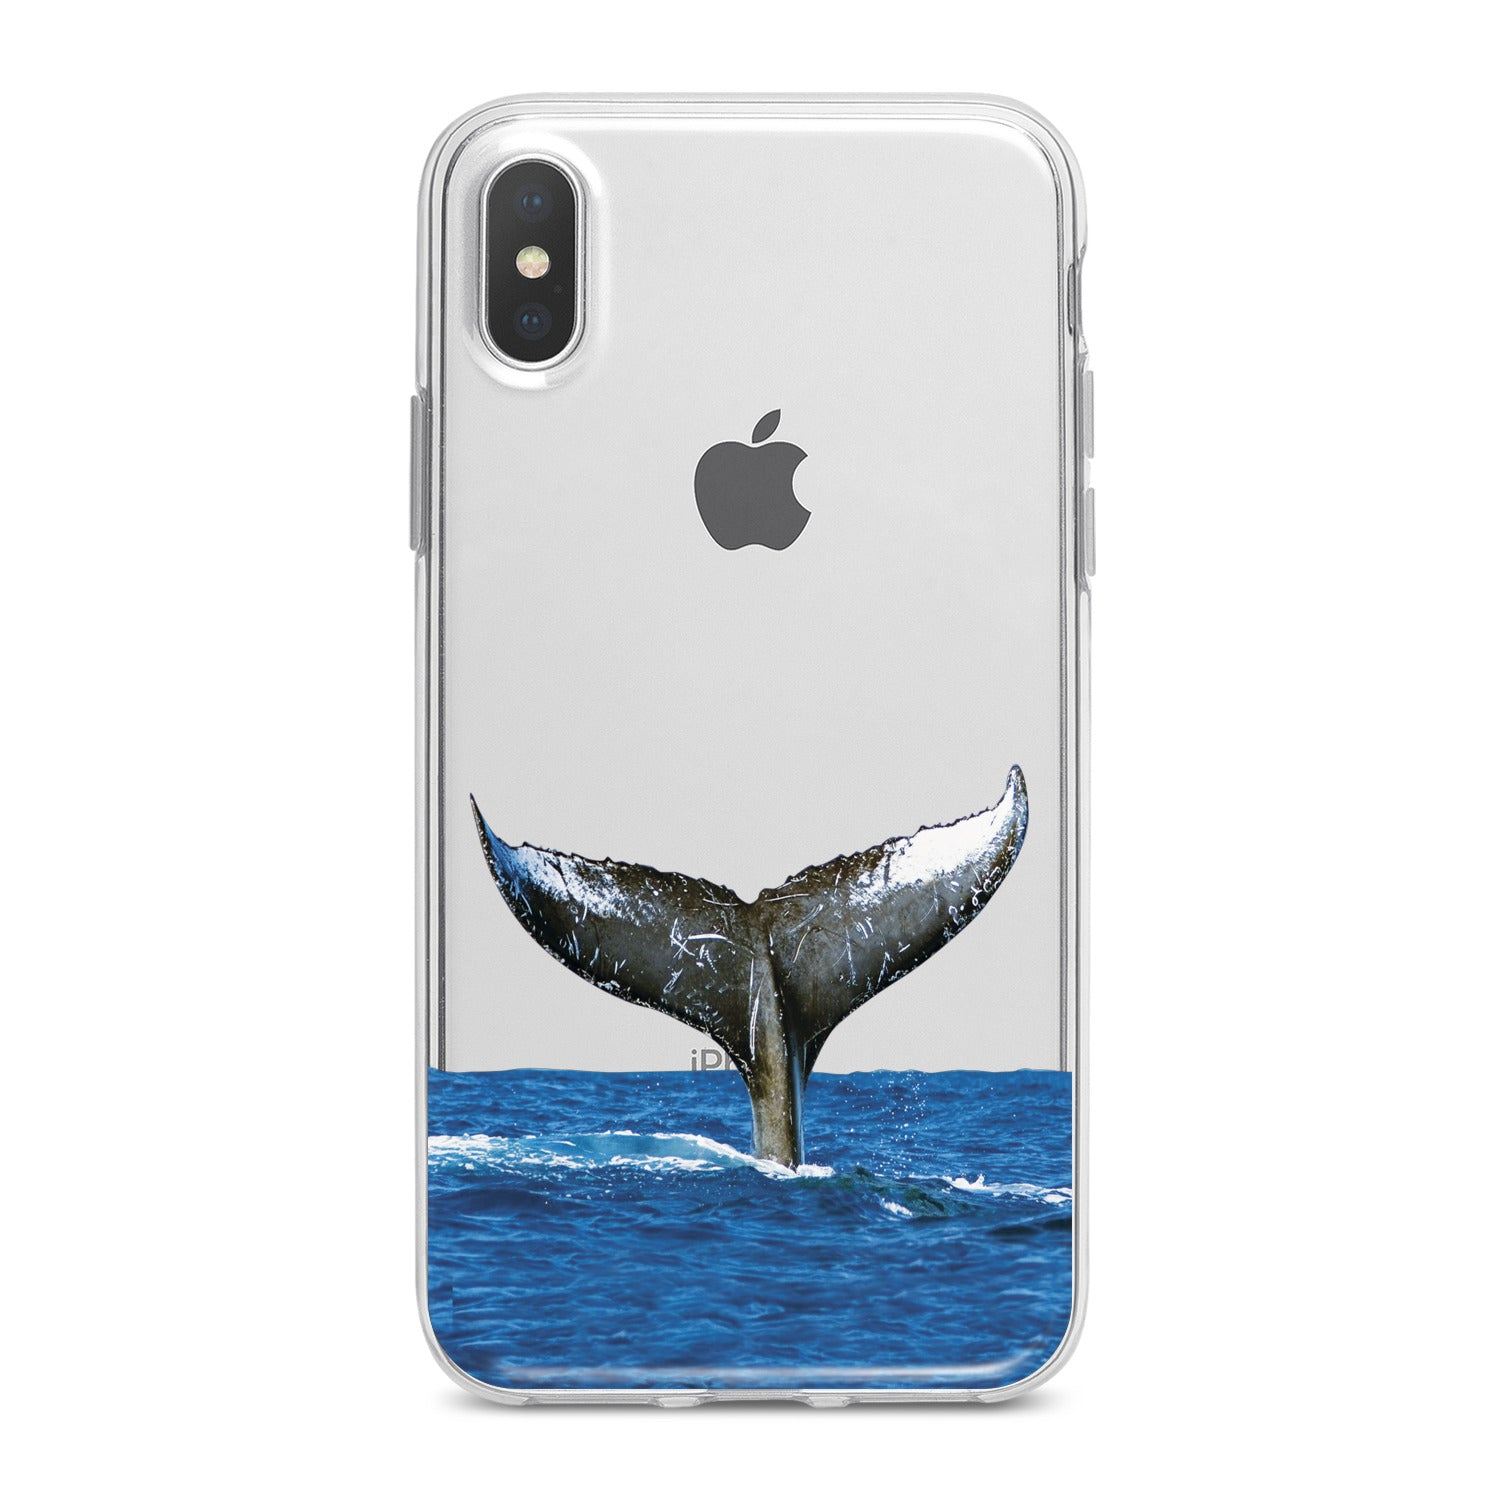 Lex Altern Ocean Whale Phone Case for your iPhone & Android phone.